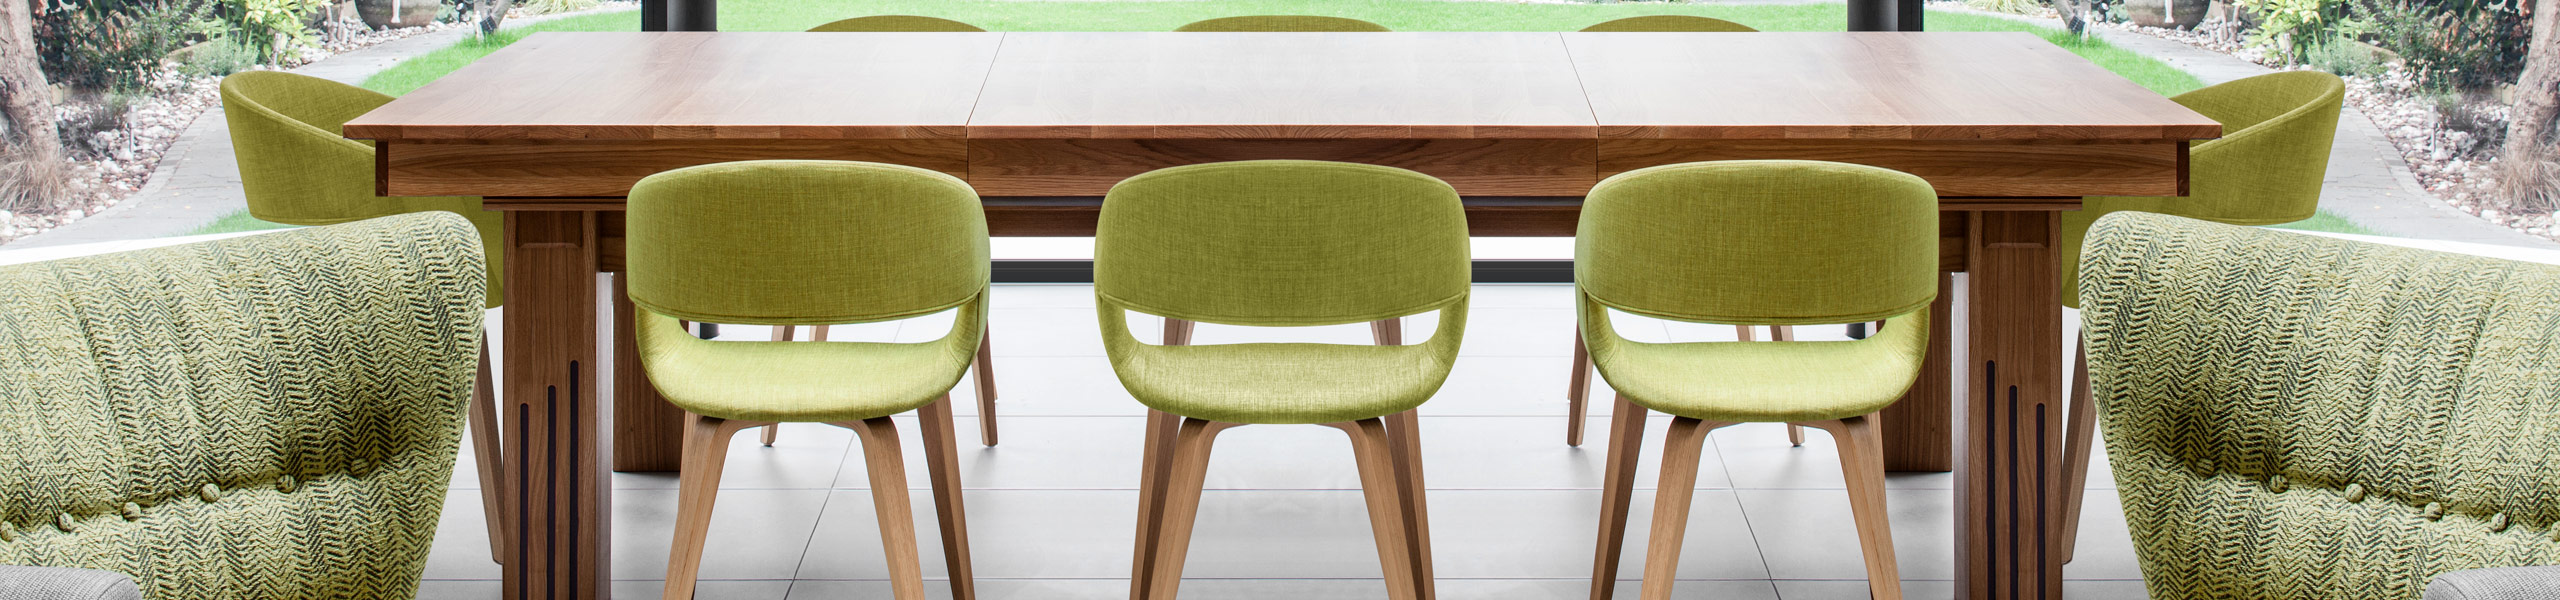 Marcus Dining Chair Green Video Banner